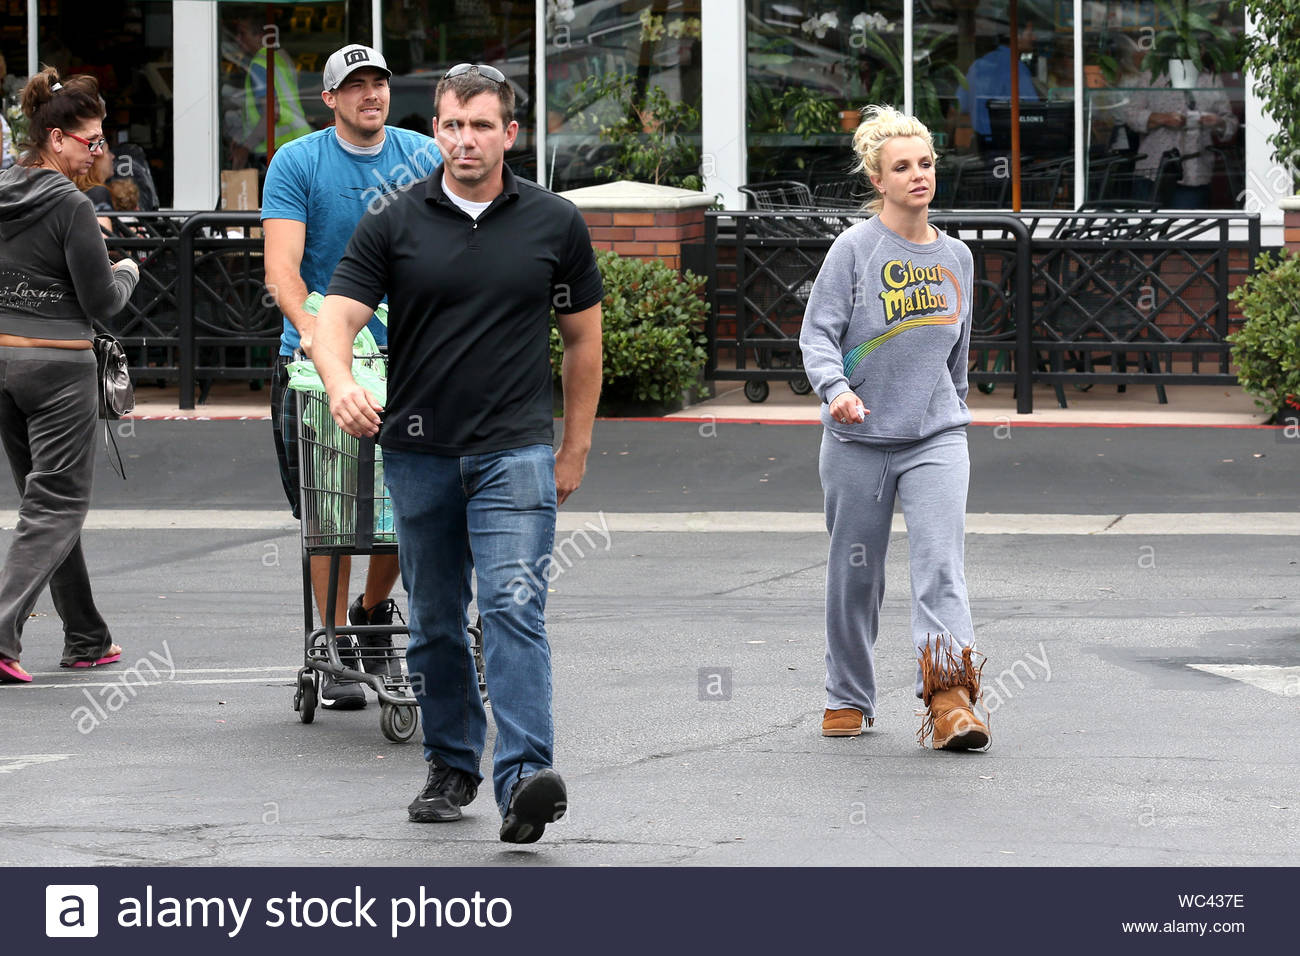 Thousand Oaks Ca Britney Spears Is Still Half Asleep While Running Errands With Her Boyfriend David Lucado And A Bodyguard In Thousand Oaks The Pop Superstar Donned A Grey Clout Malibu